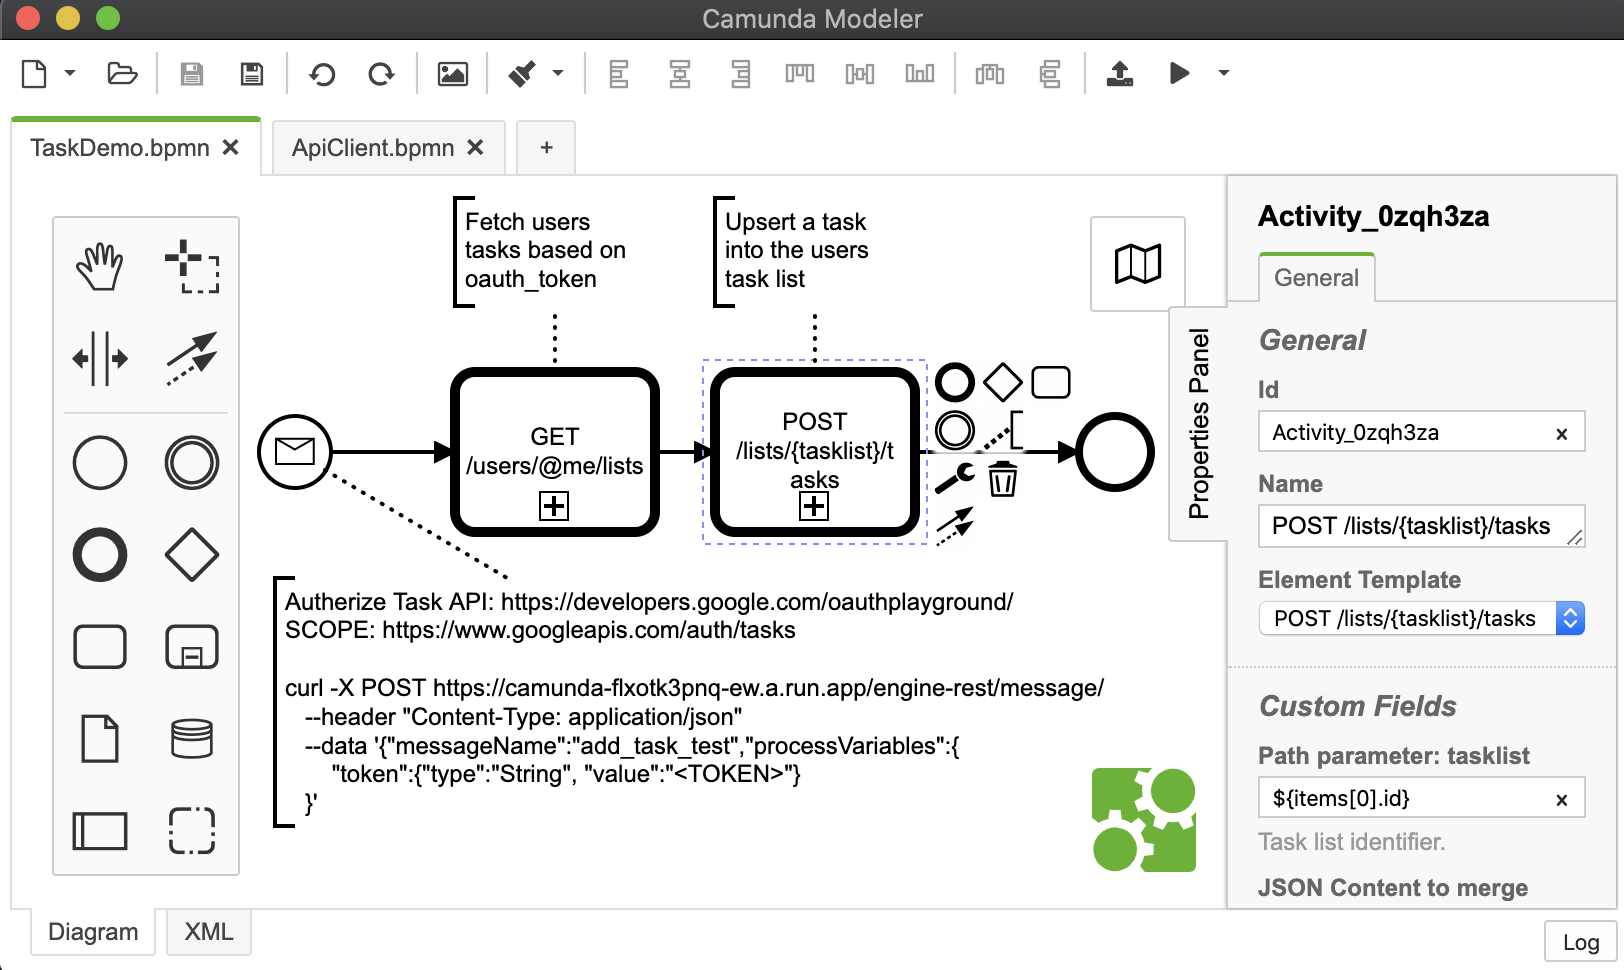 BPMN OpenAPI demo diagram